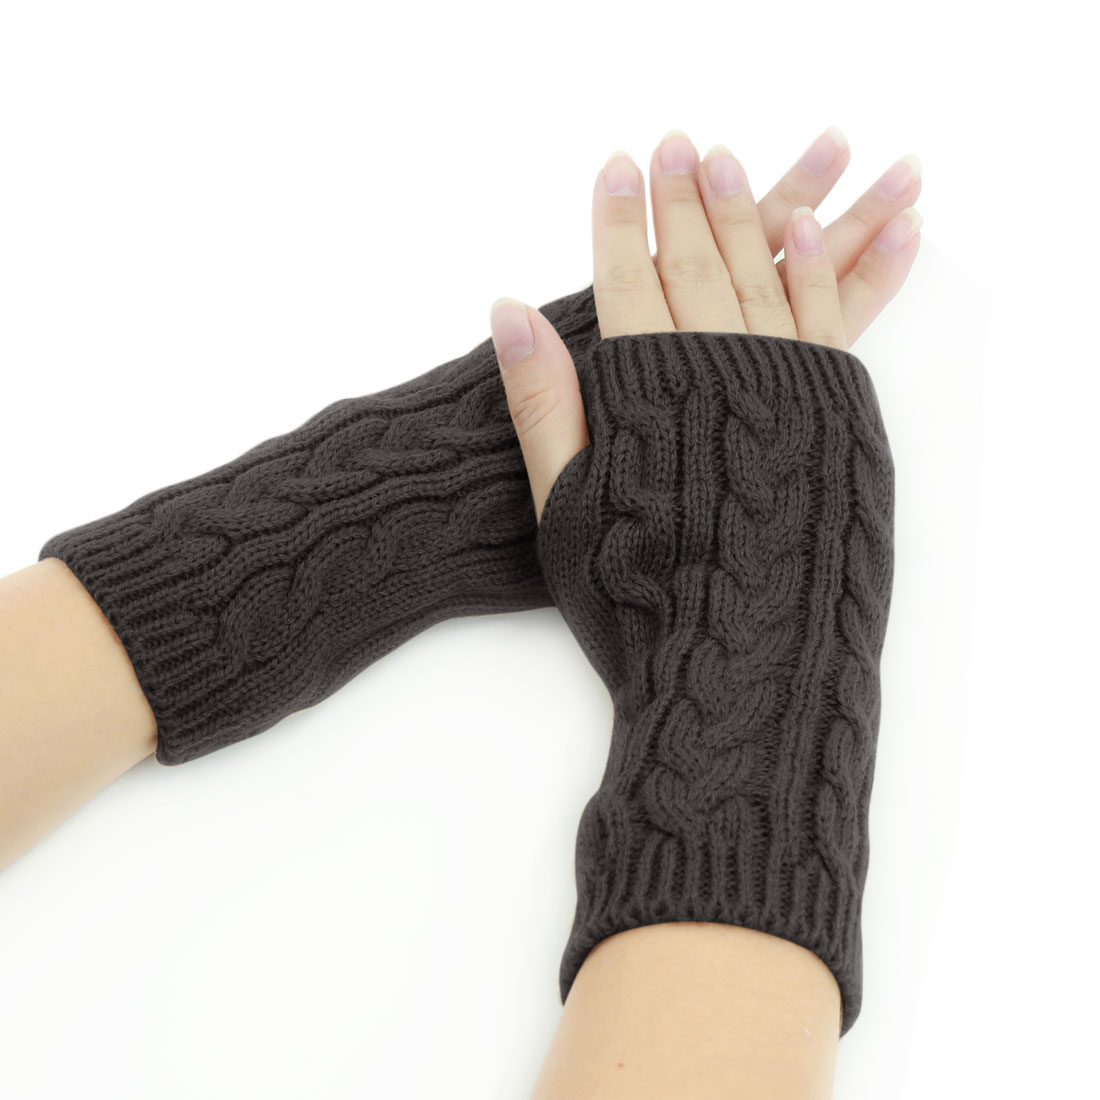 Tasharina Unisex Thumbhole Fingerless Cable Knit Knitted Gloves Gray